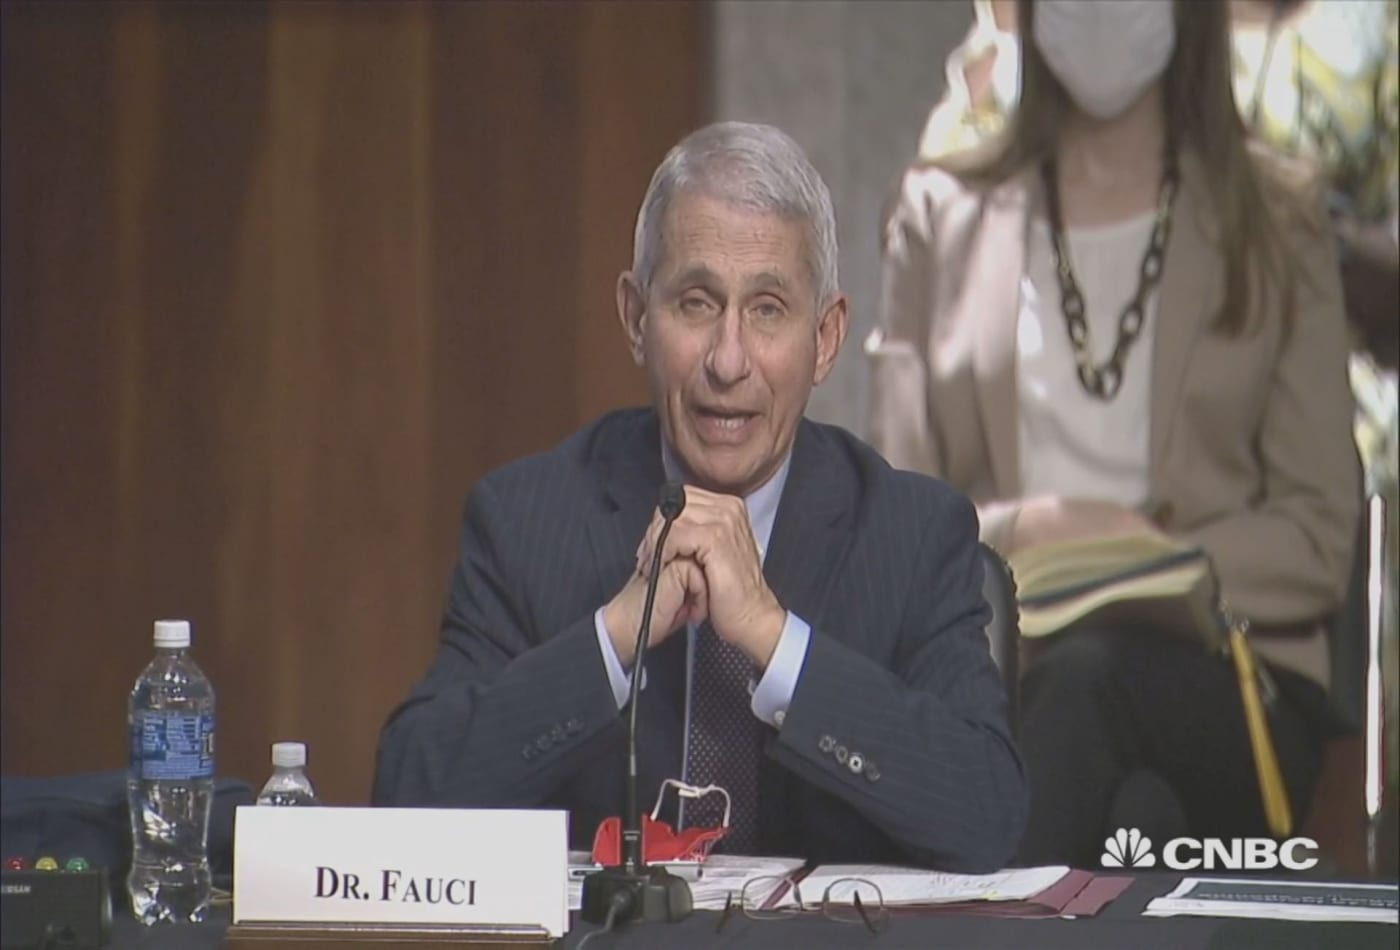 Fauci: New virus in China has traits of 2009 swine flu and 1918 pandemic flu